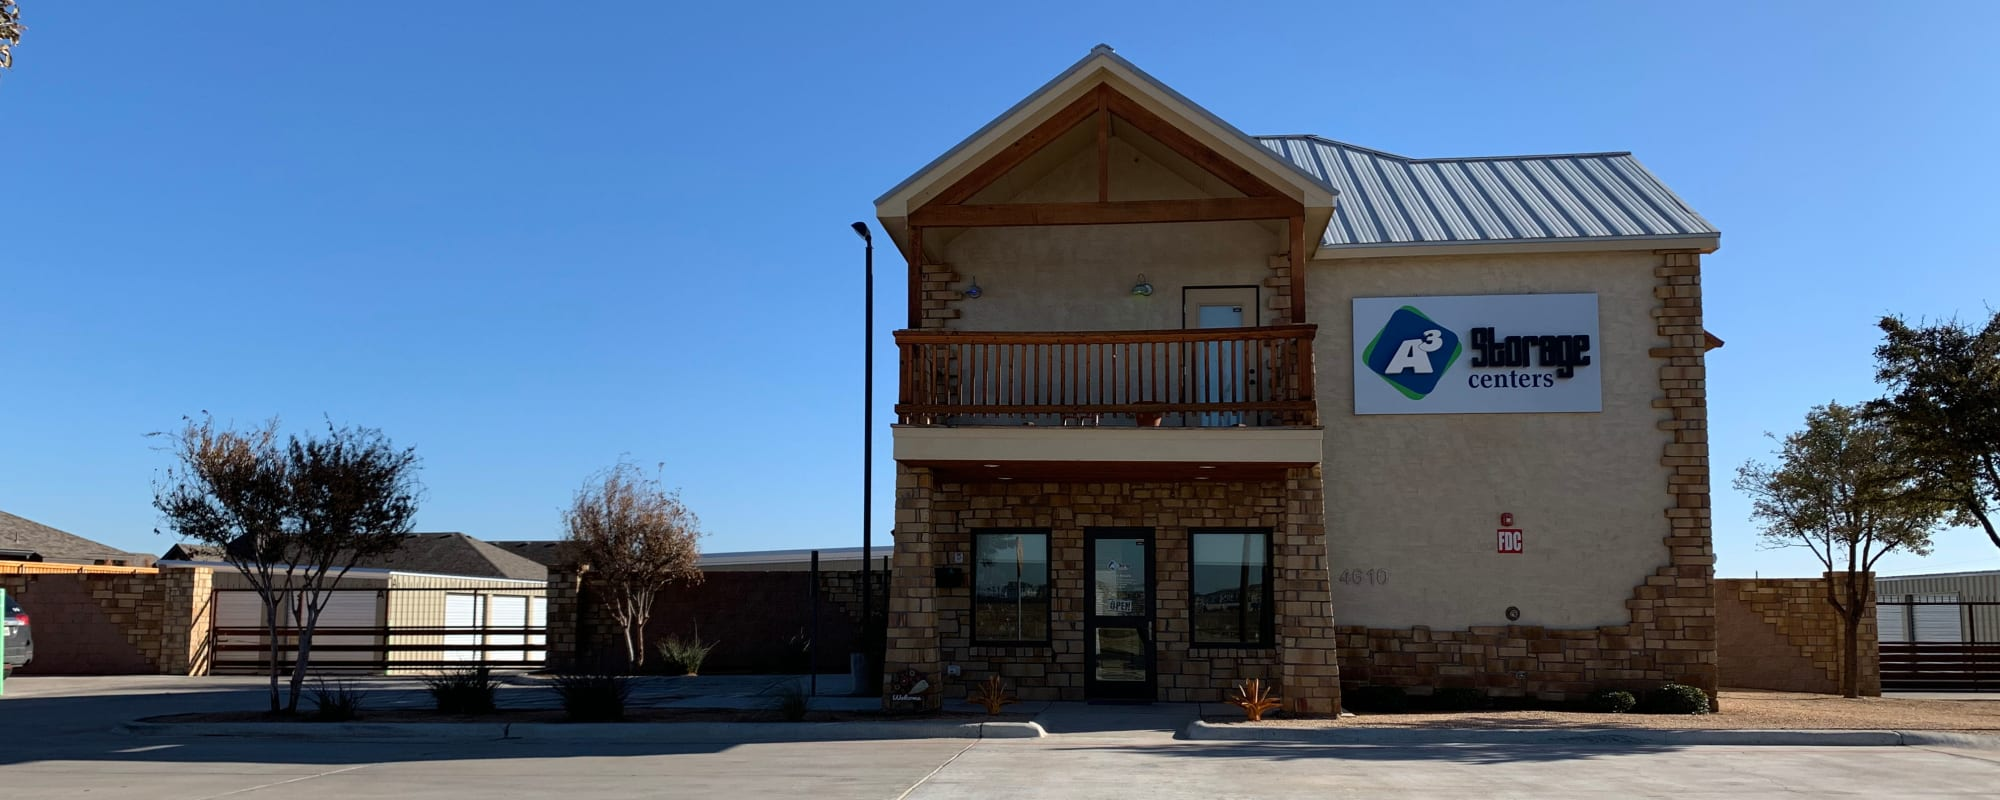 Front entrance to A3 Storage Centers in Midland, Texas